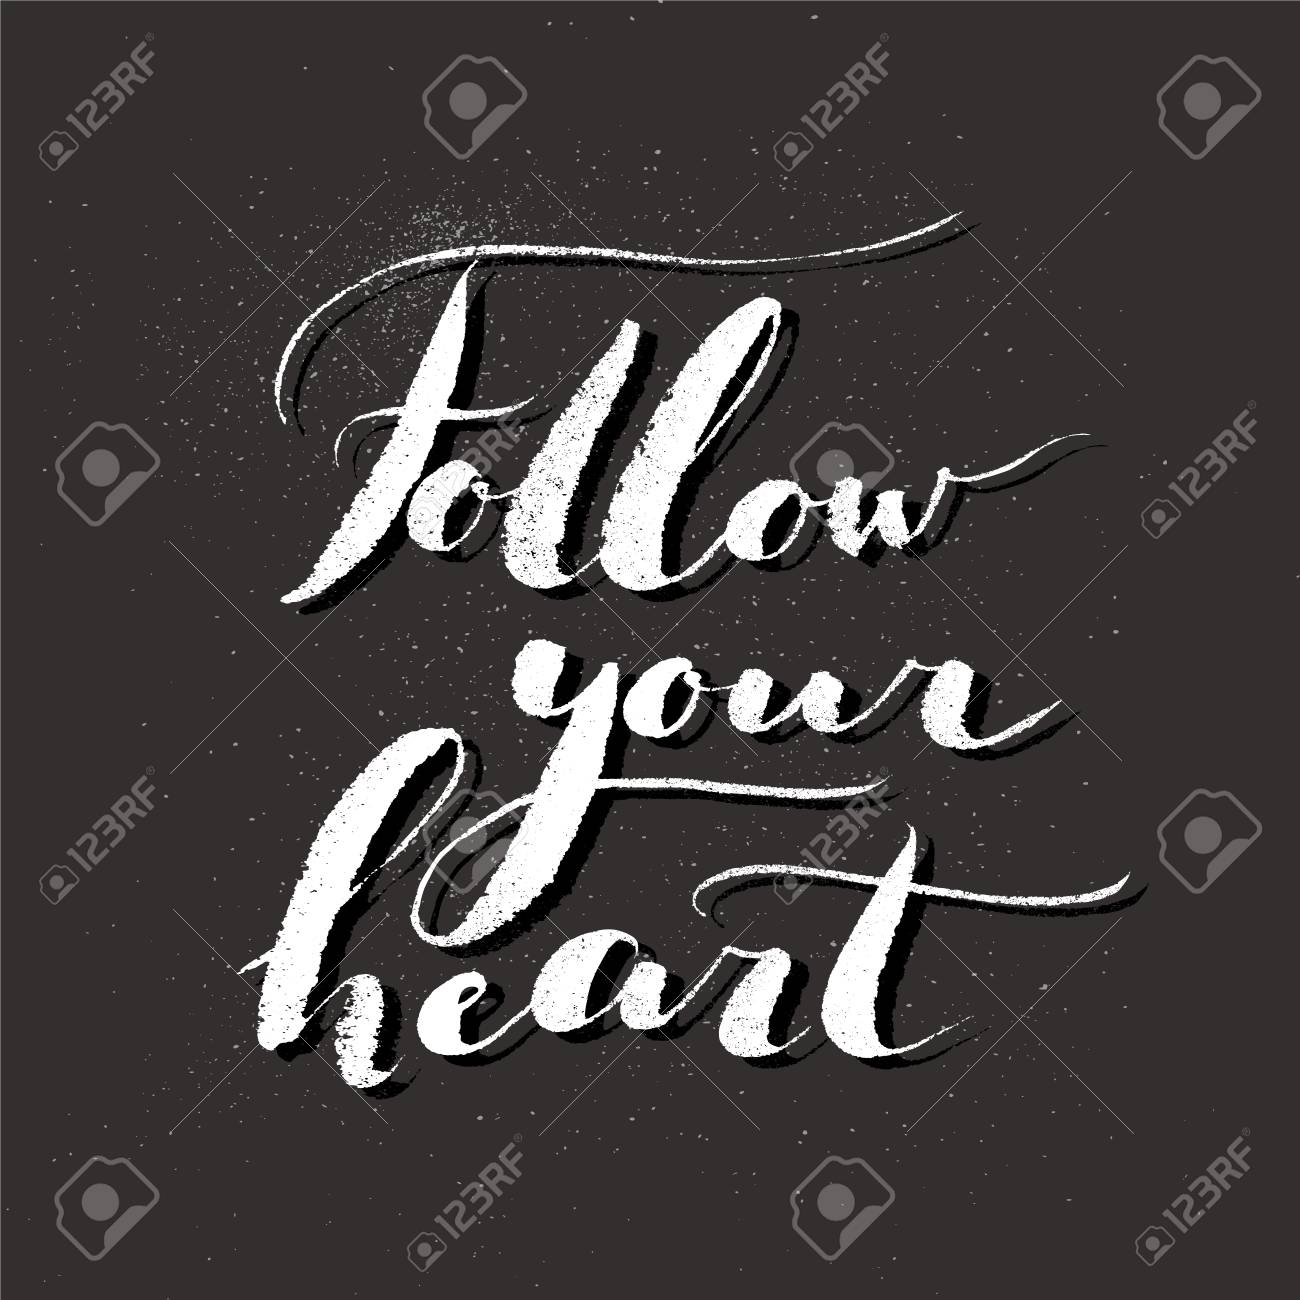 Handdrawn Lettering Of A Phrase Follow Your Heart Unique Typography Royalty Free Cliparts Vectors And Stock Illustration Image 108748147